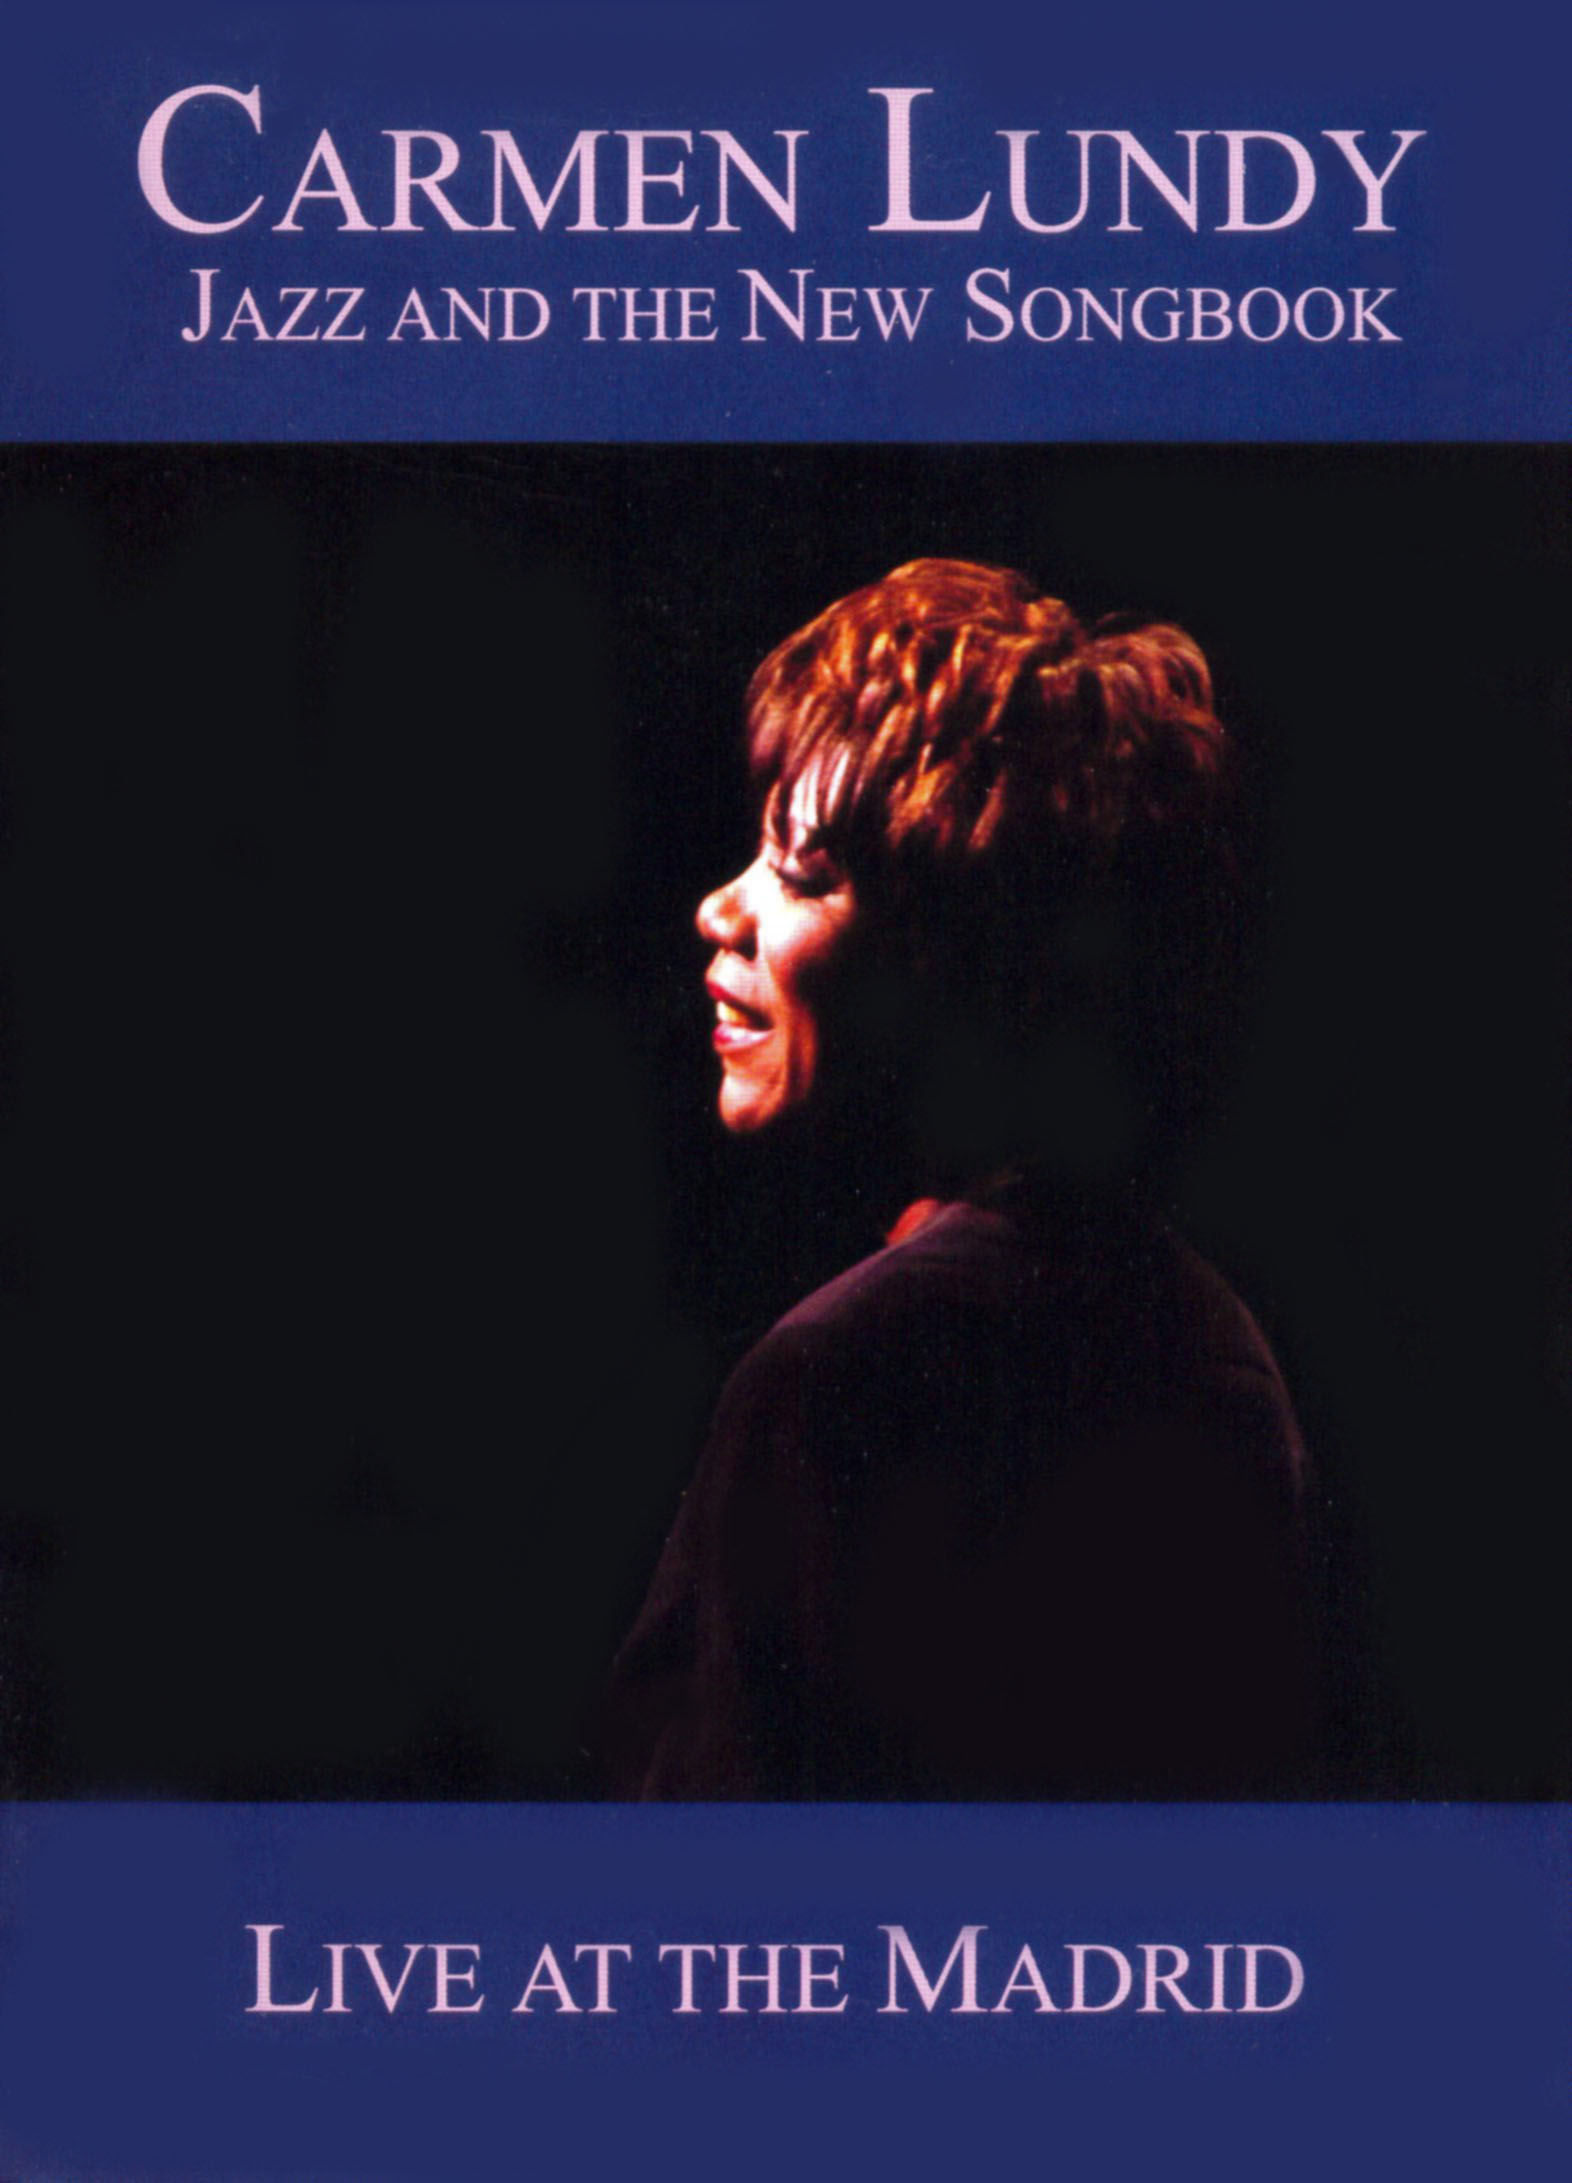 Carmen Lundy: Jazz and the New Songbook - Live at the Madrid